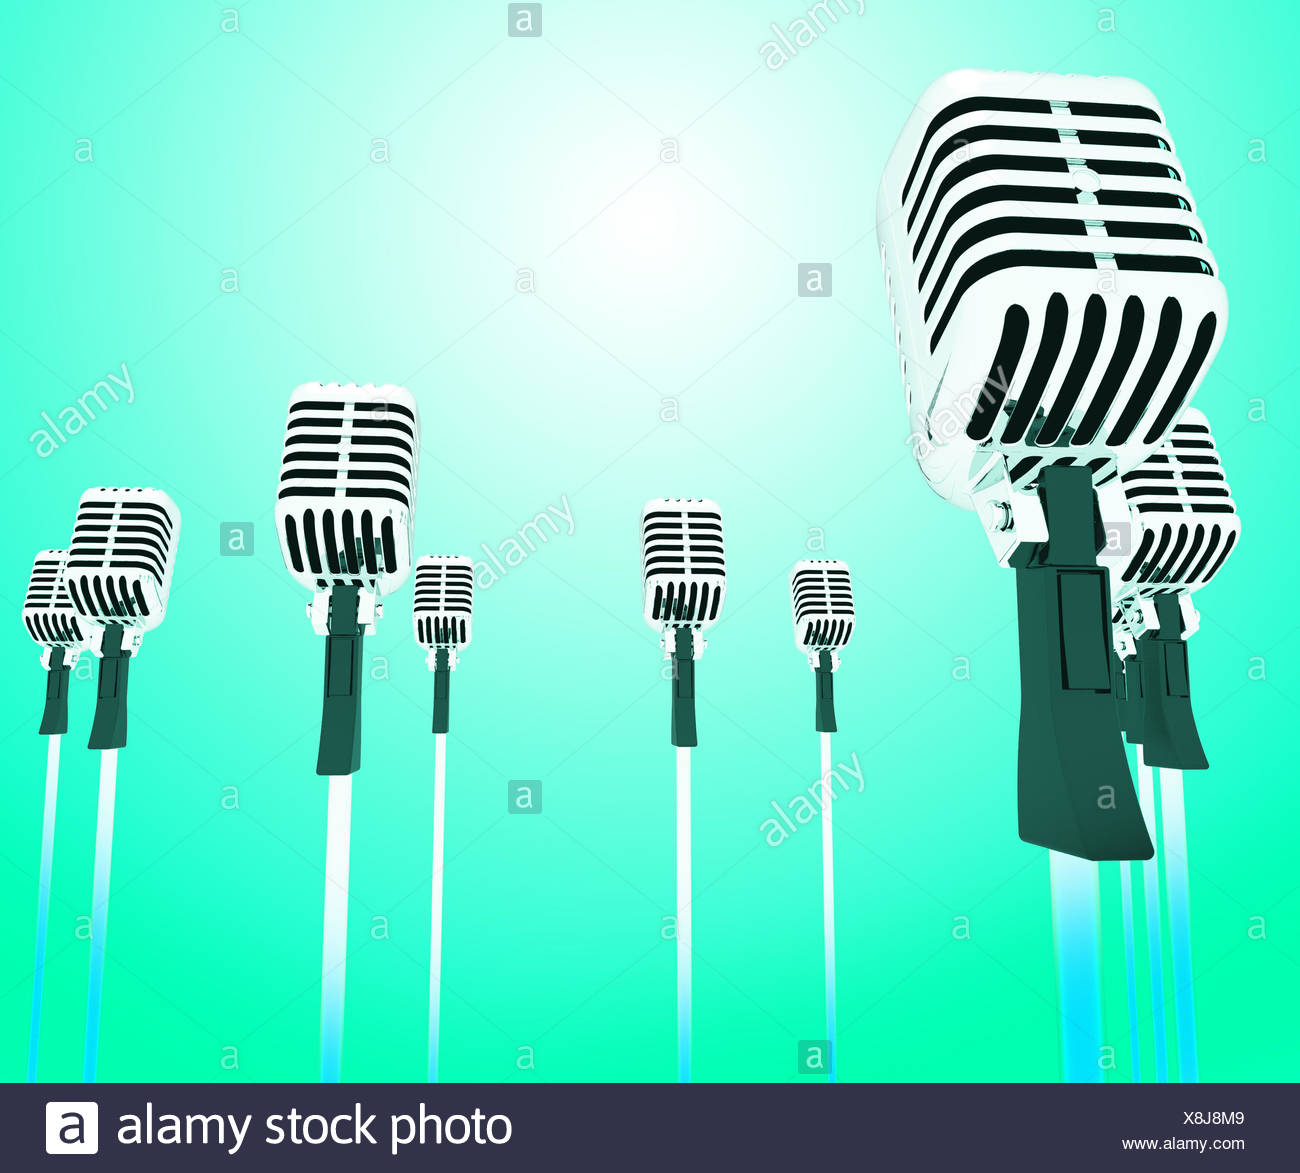 Microphones Micl Shows Music Groups Band Or Singing Hits - Stock Image